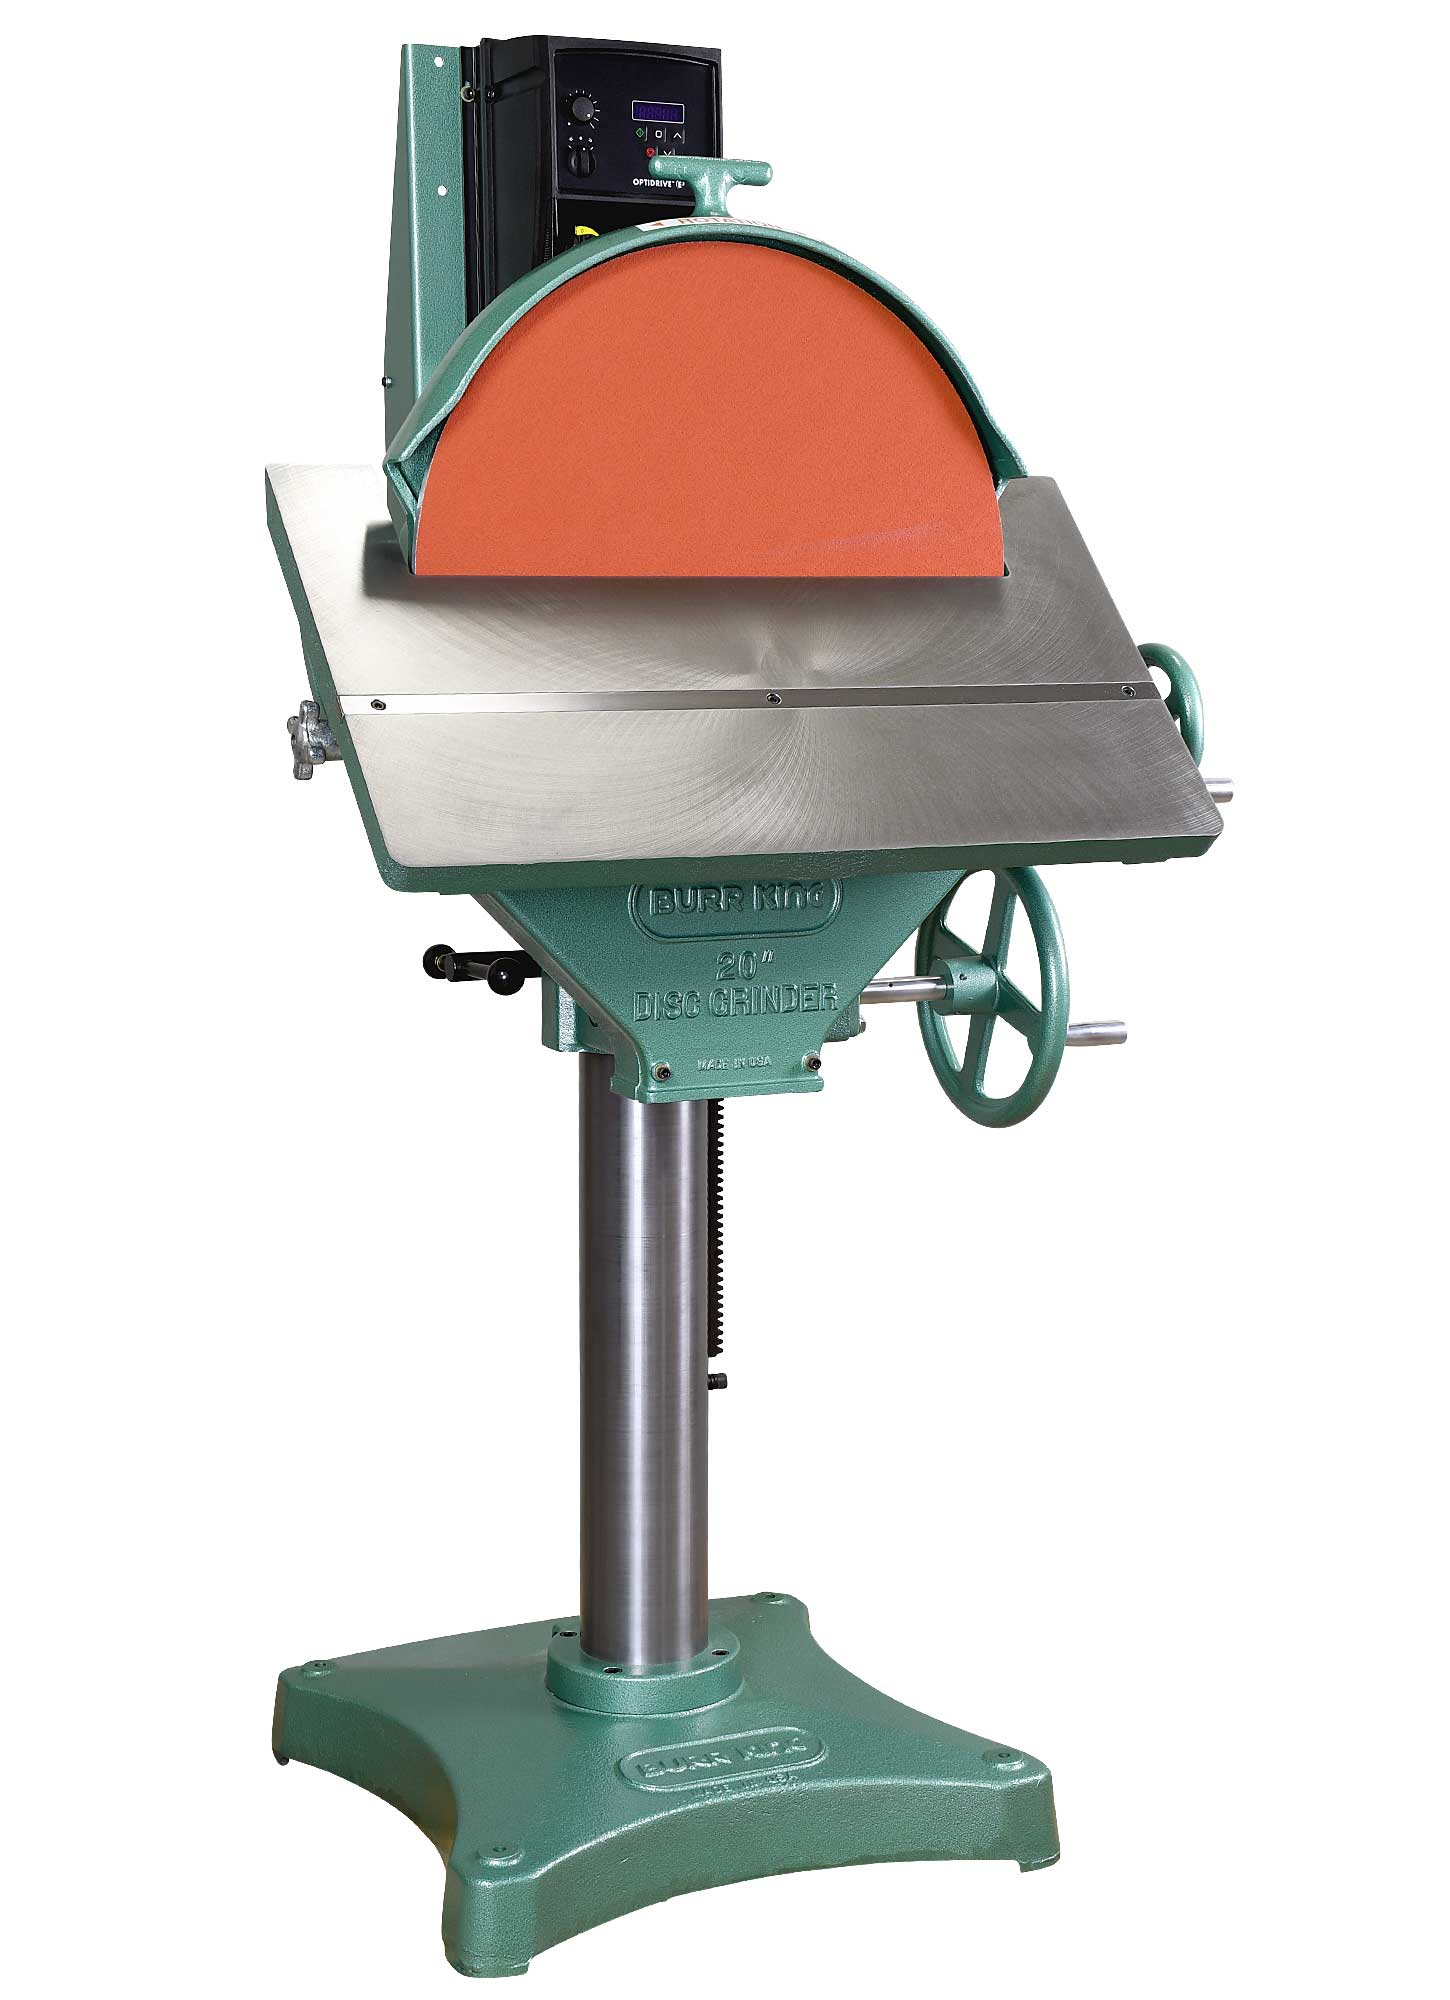 24103 - 20` Variable Speed Disc Grinder, 45 degree table tilt, gear driven